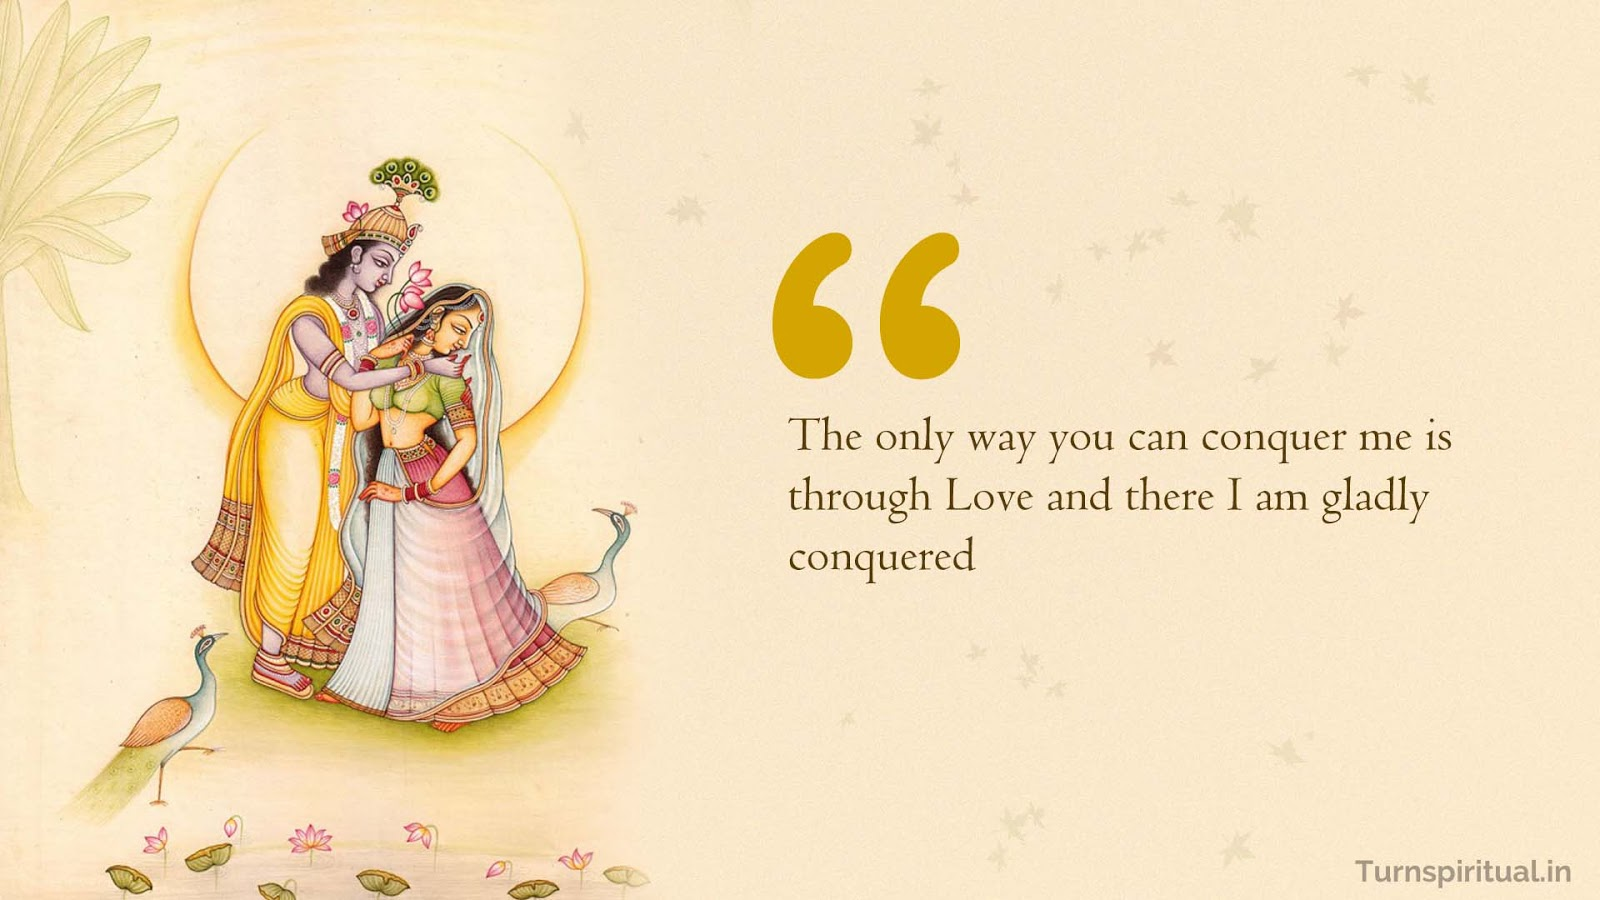 Lord Krishna Quotes Beauteous 14 Quoteslord Krishna On Love From Bhagavadgita  Turnspiritual.in